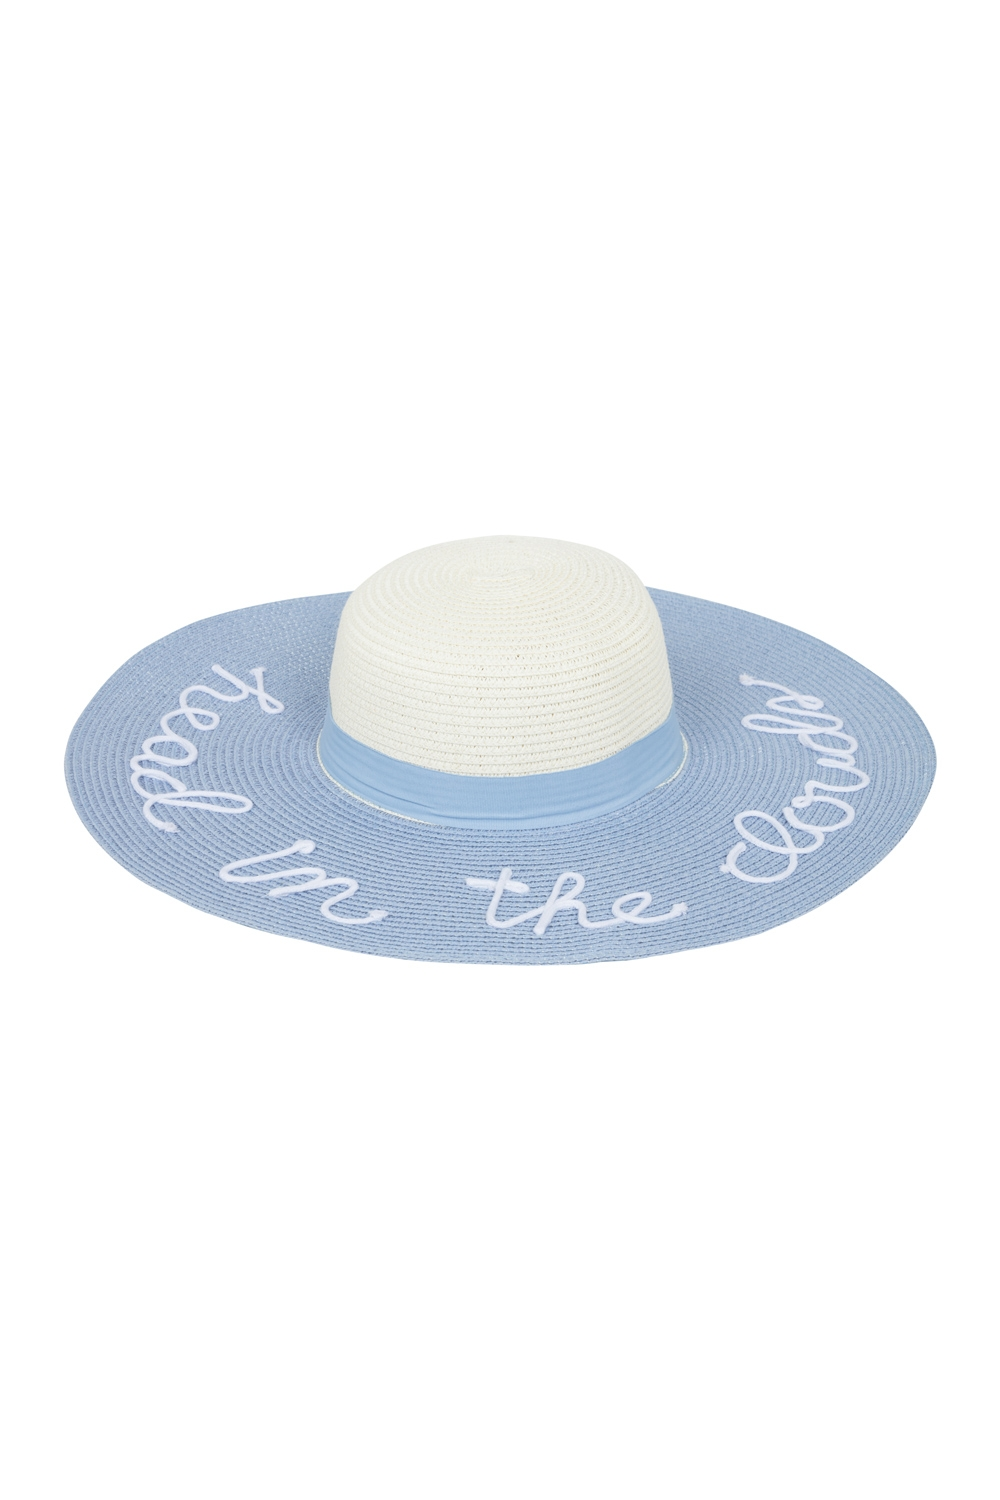 Head In The Clouds Sunhat Blue